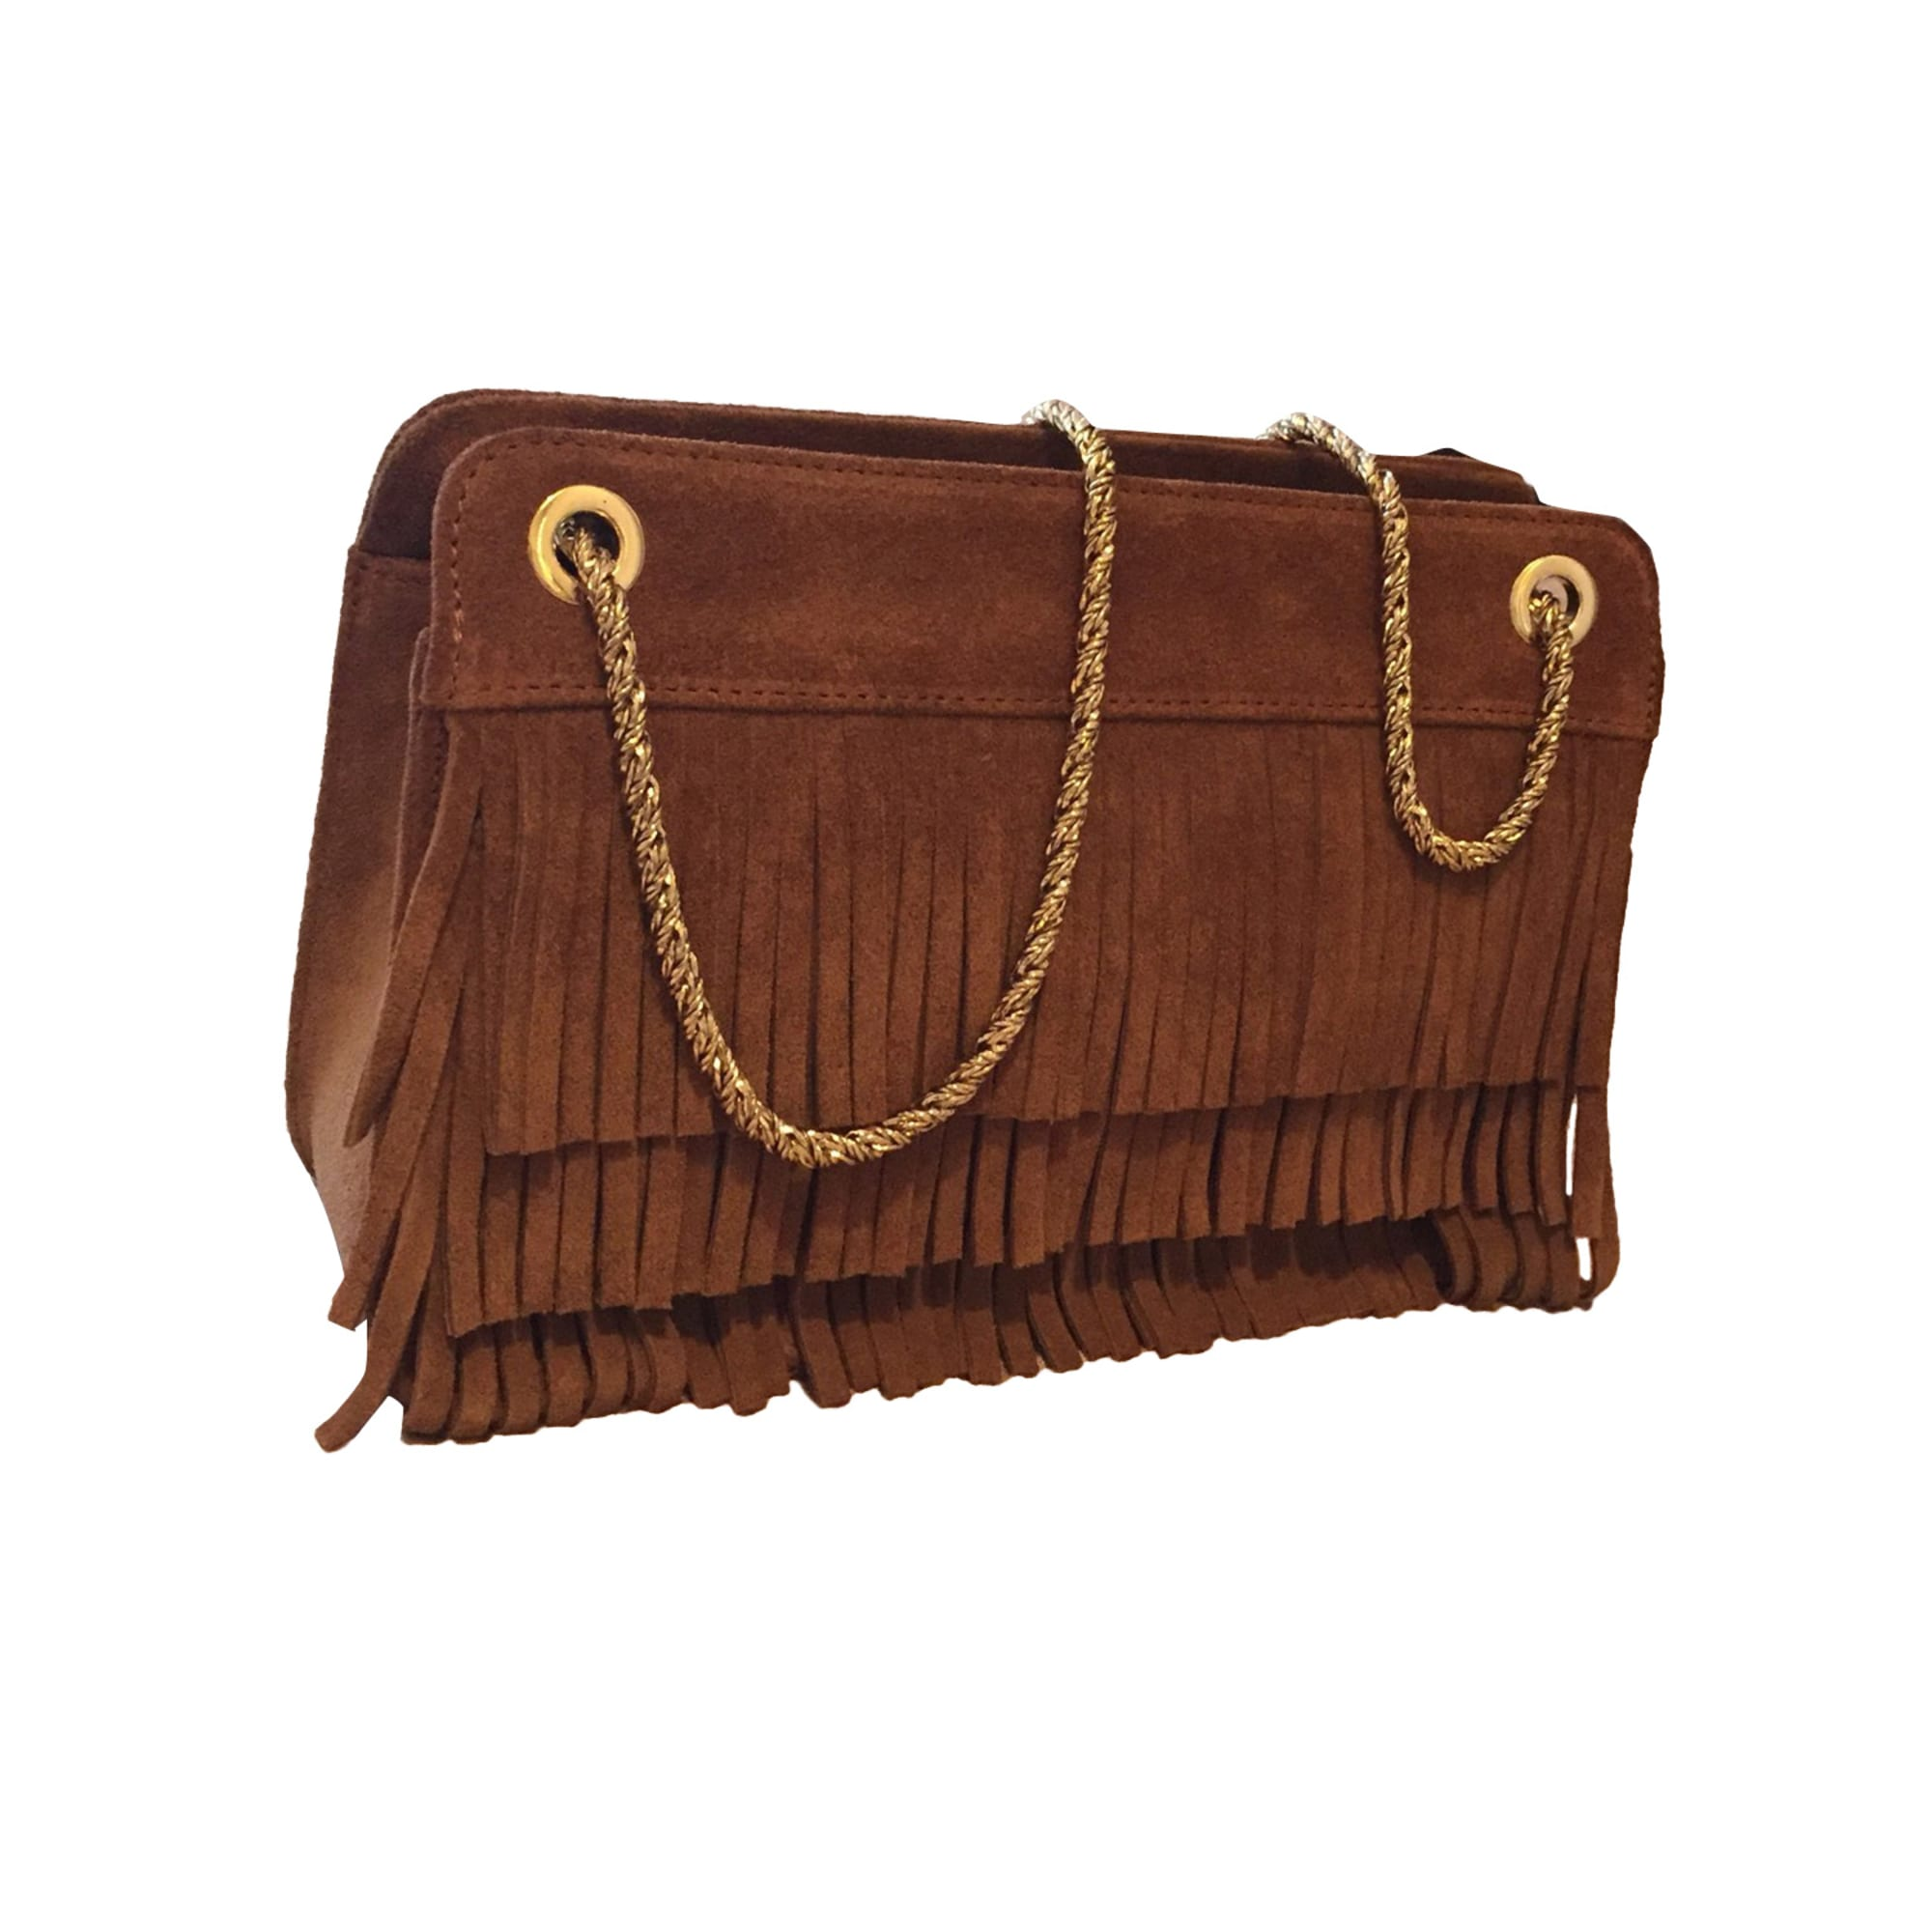 Leather Handbag SÉZANE Beige, camel